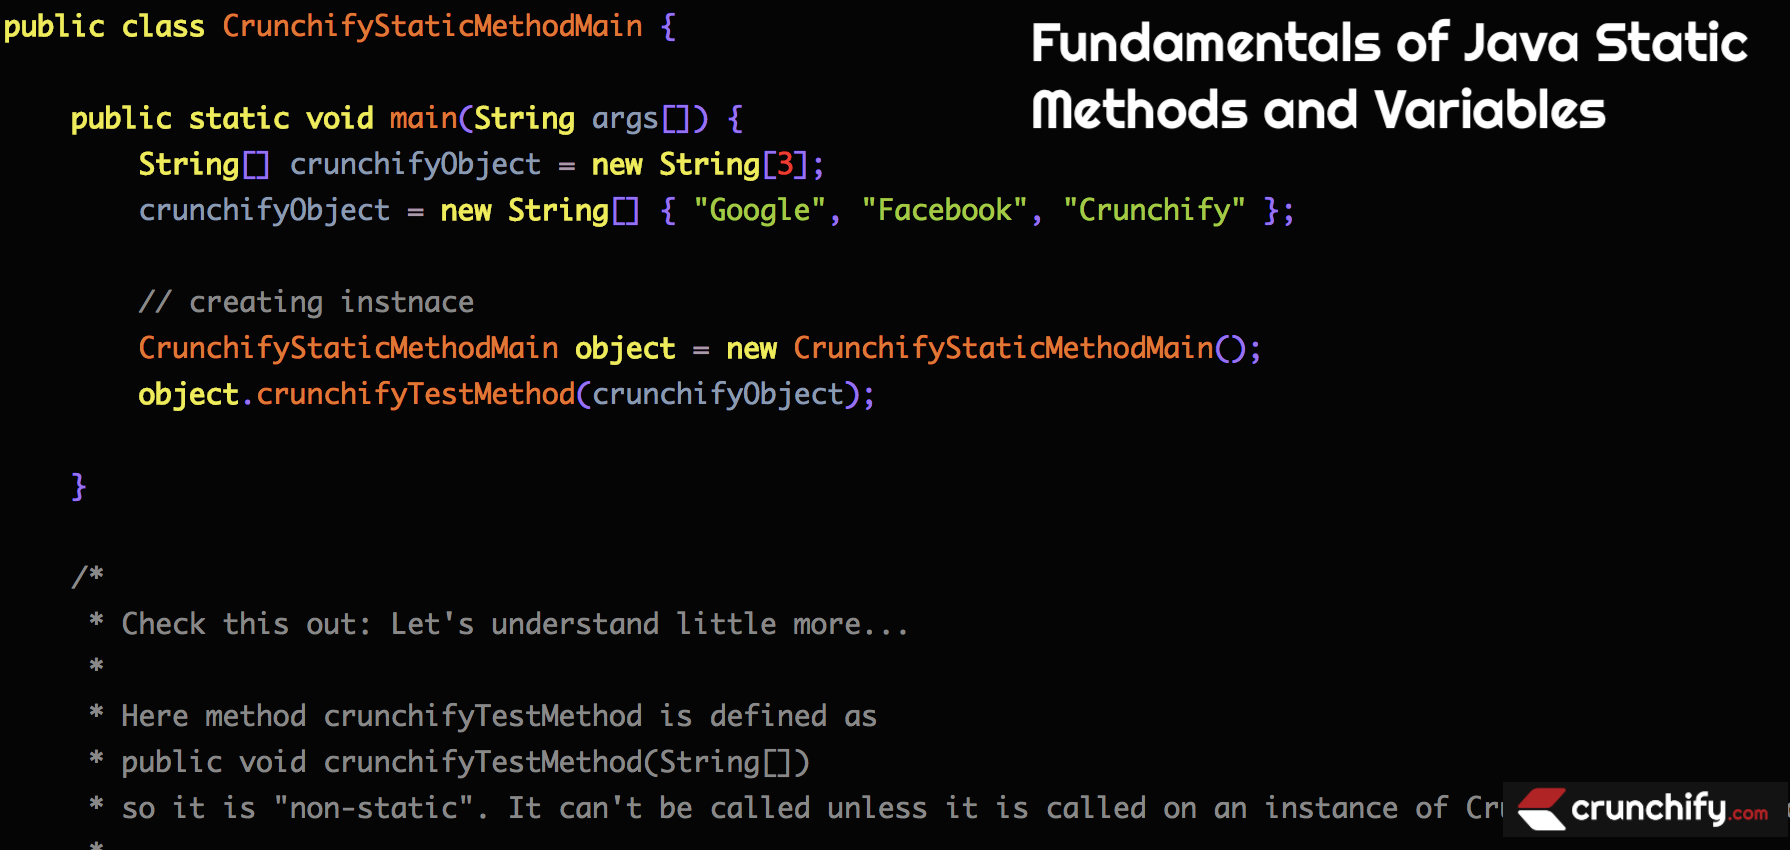 Fundamentals of Java Static Methods and Variables